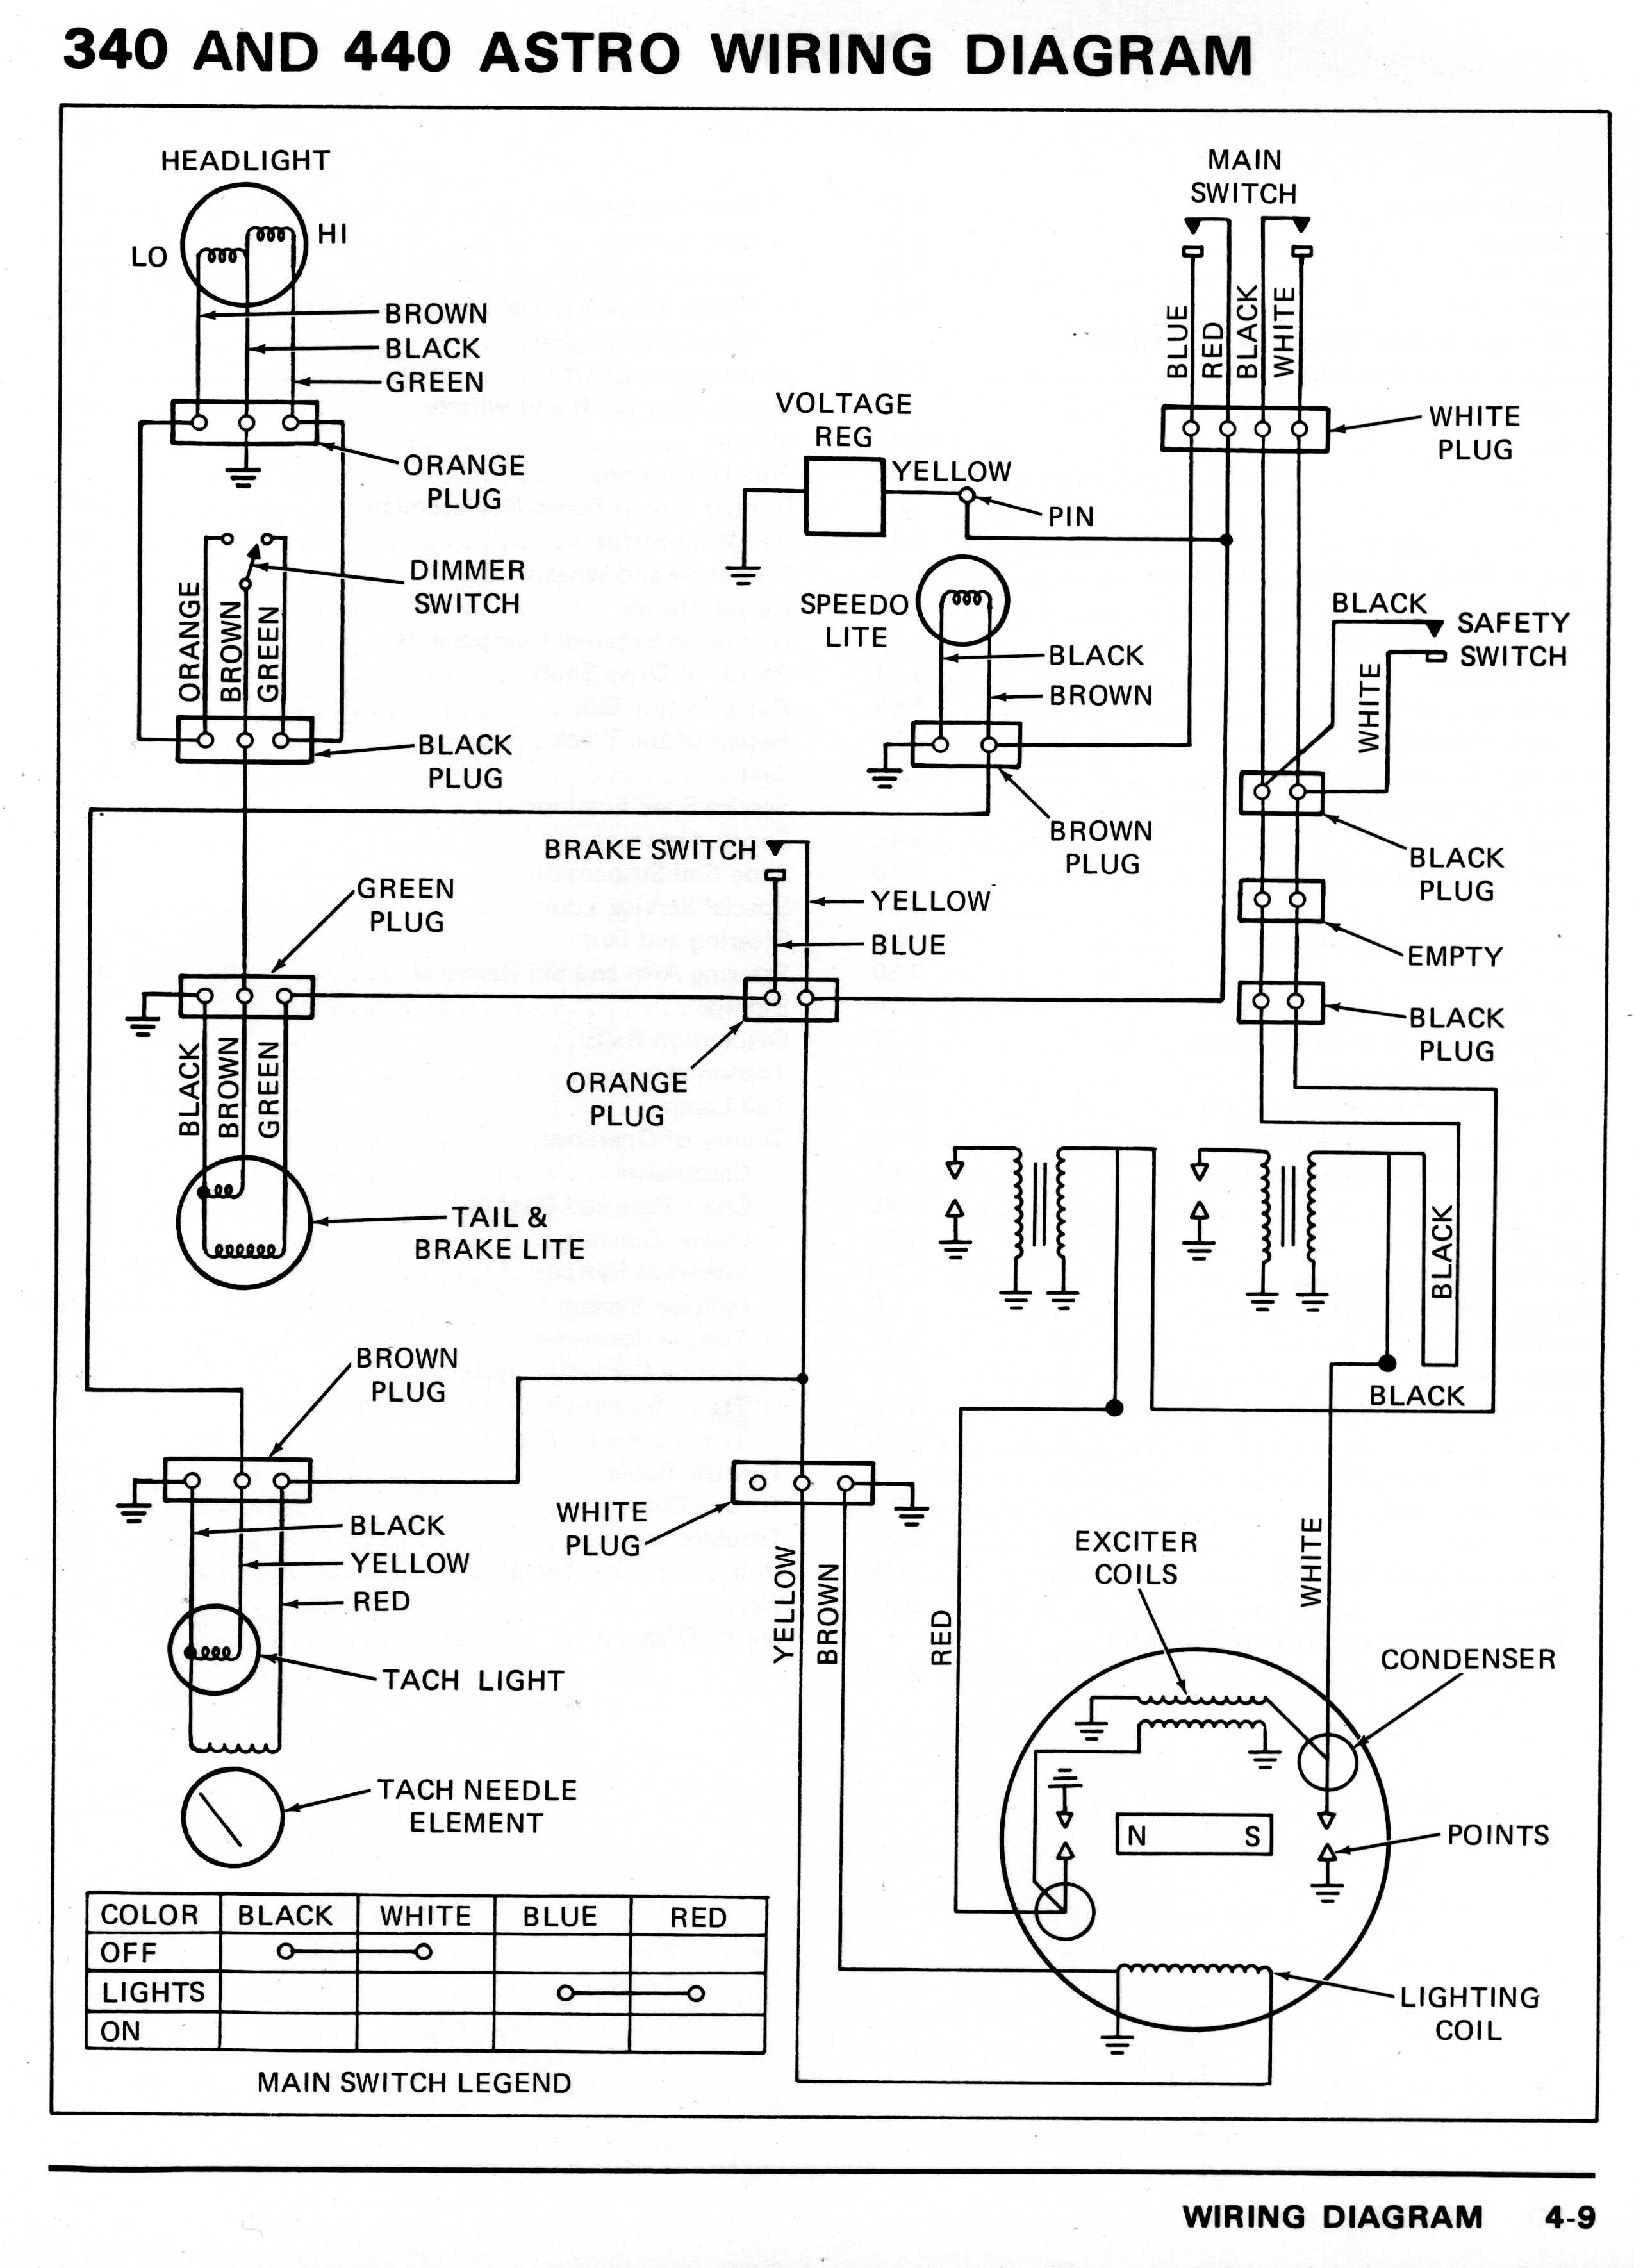 1994 Polaris 400 Wiring Diagram Example Electrical Free Picture For A Atv 4x4 94 Xplorer